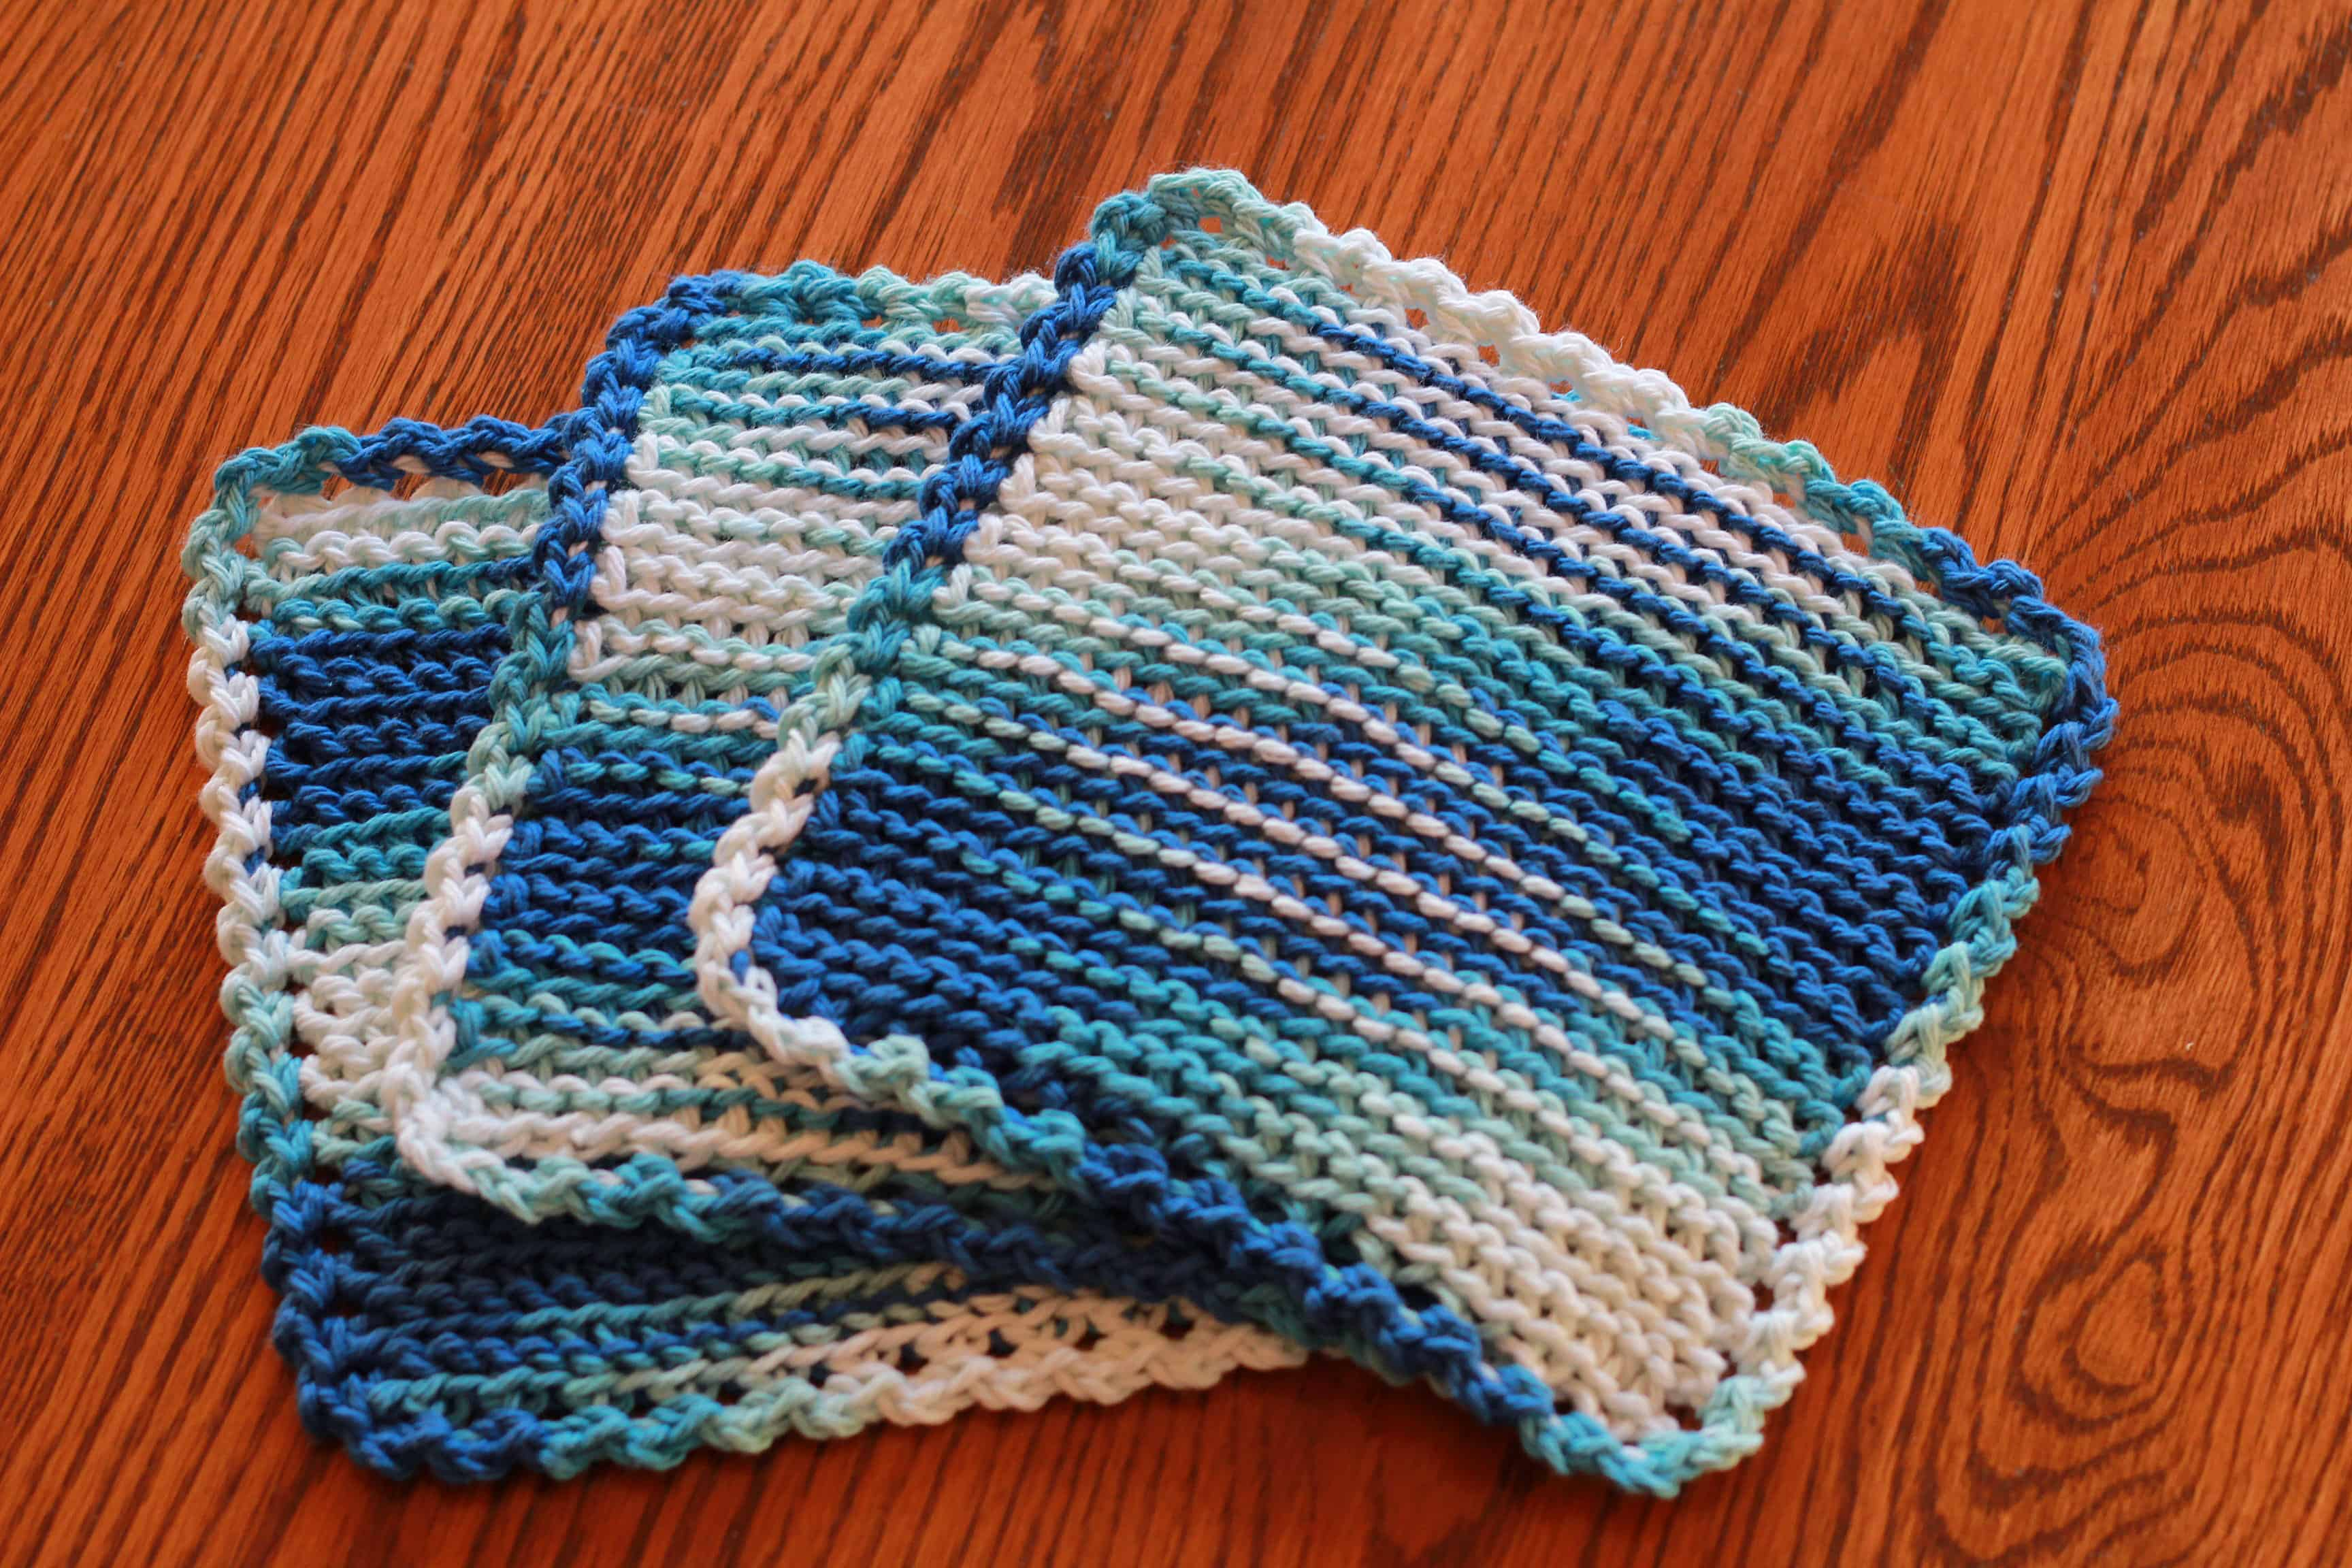 Awesome crocheted dishcloths {now for sale!}